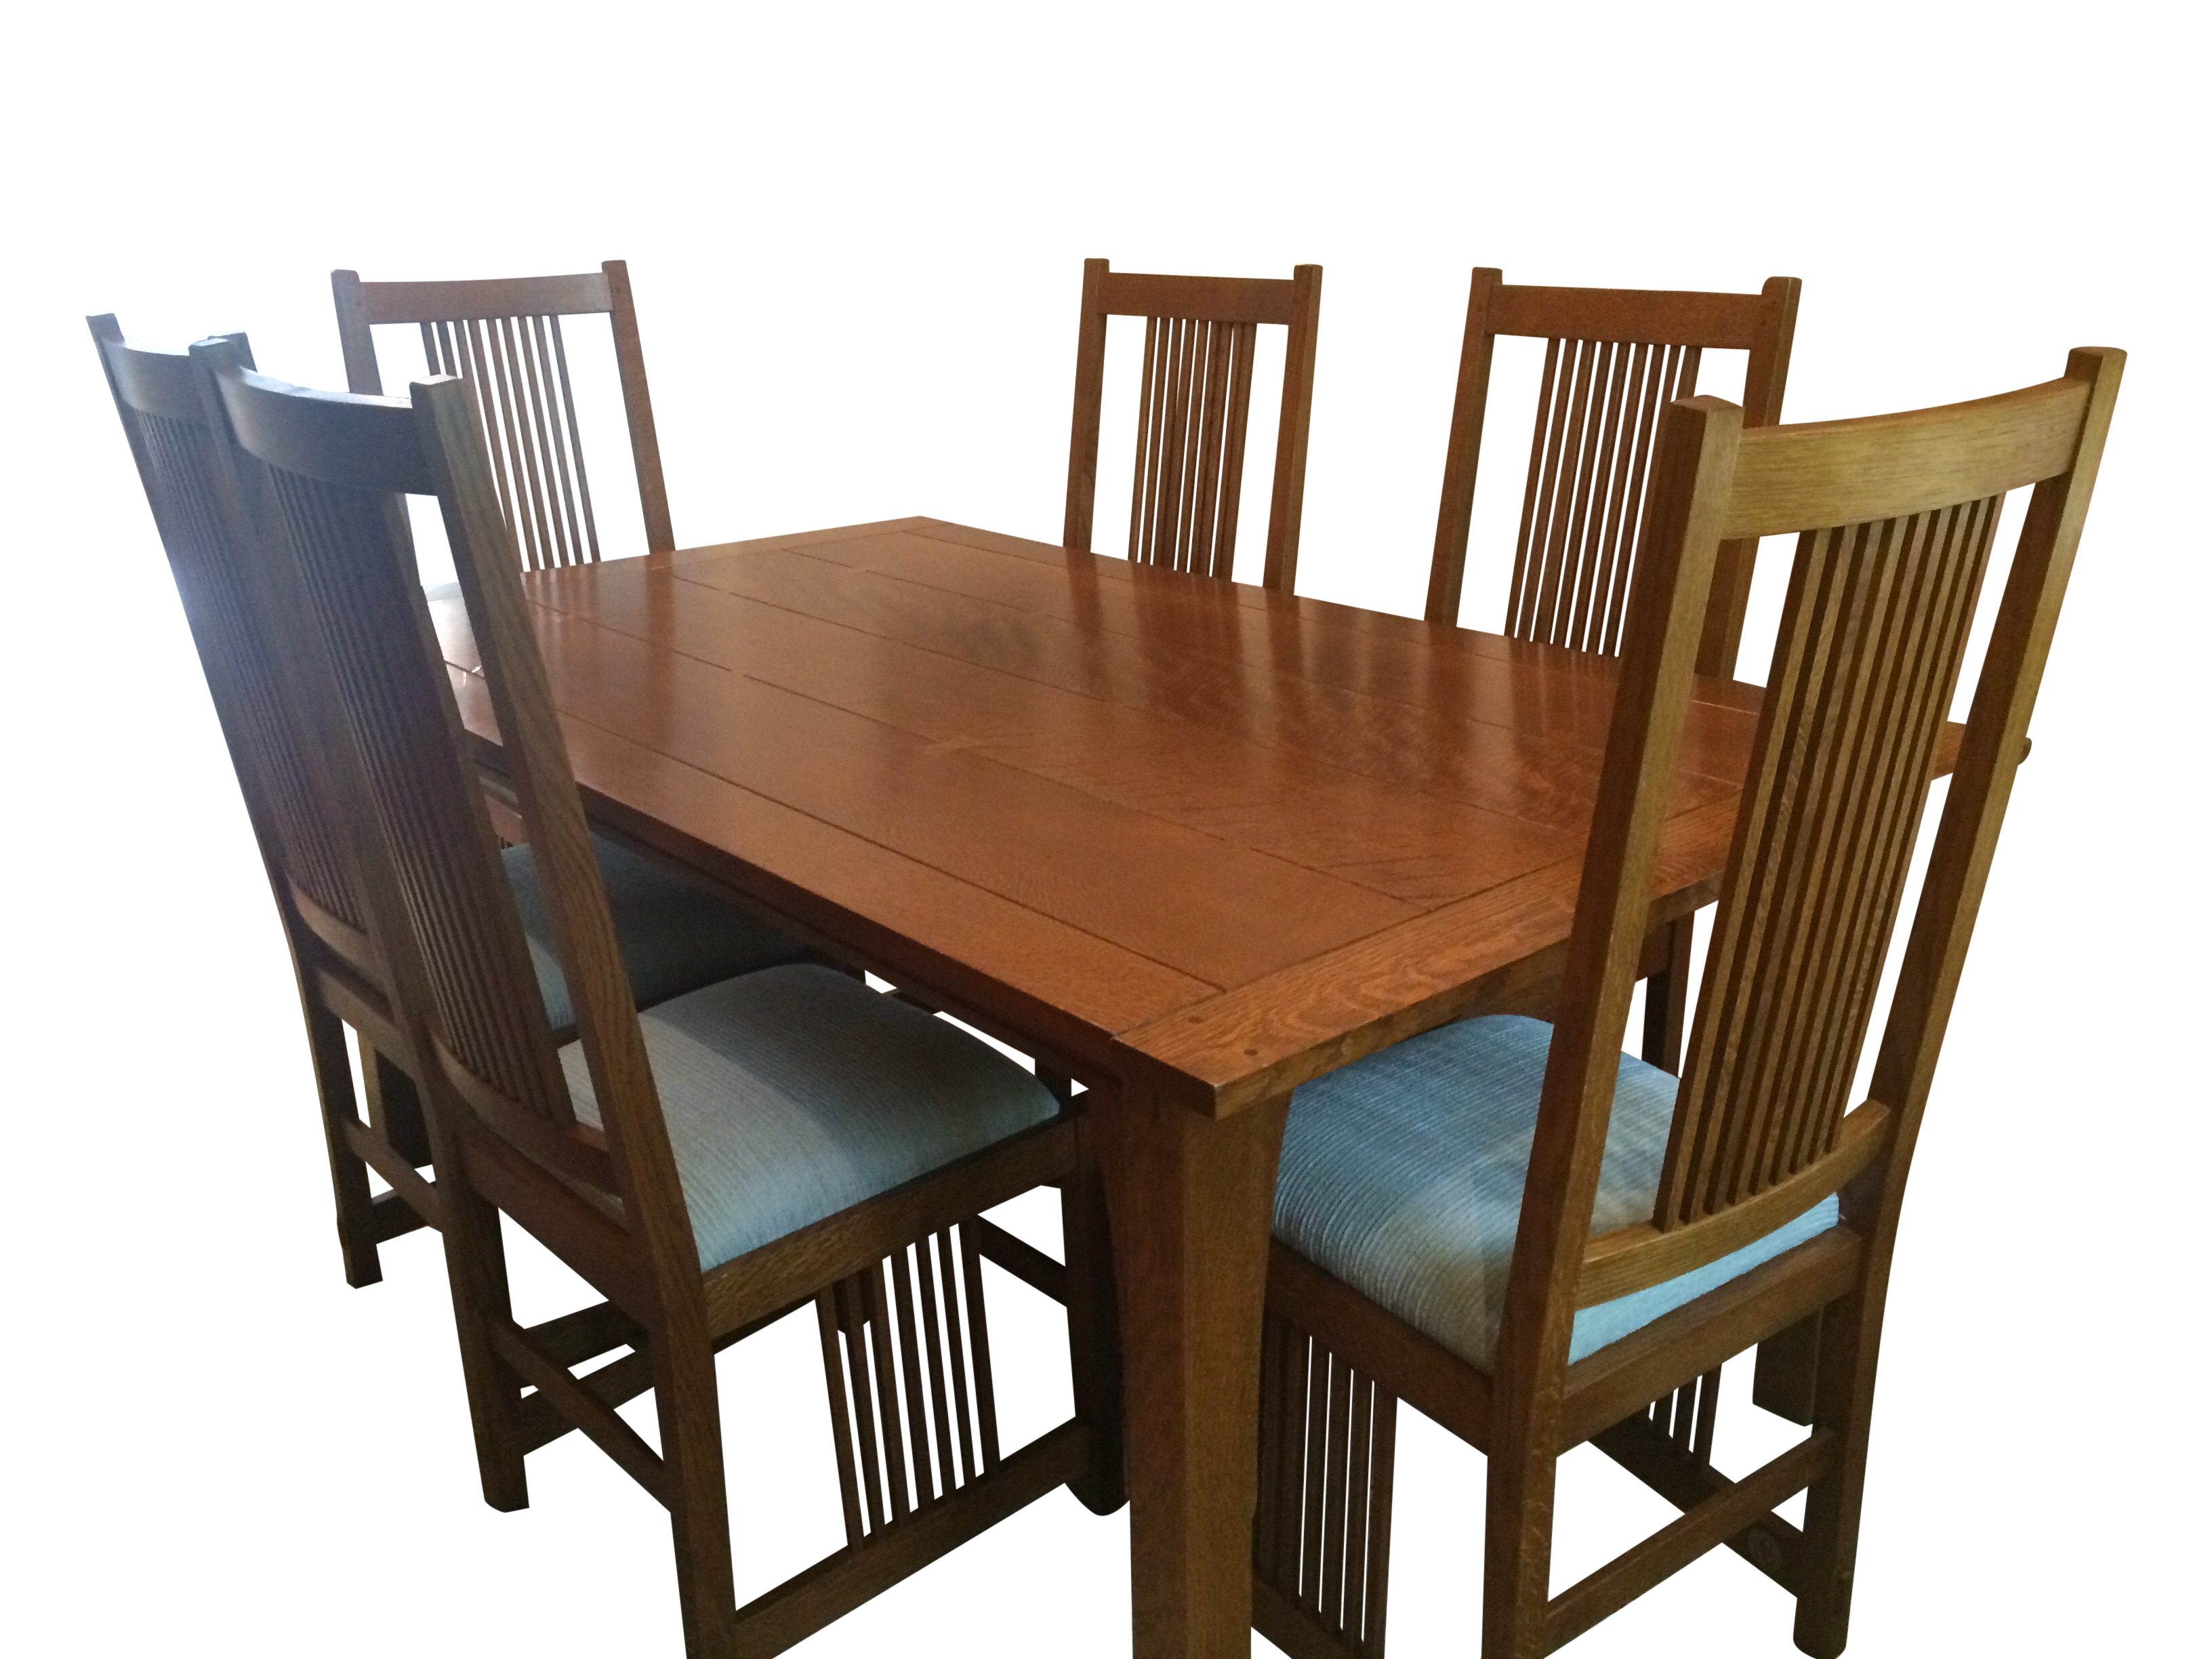 design#8001336: stickley dining chairs – stickley dining chair